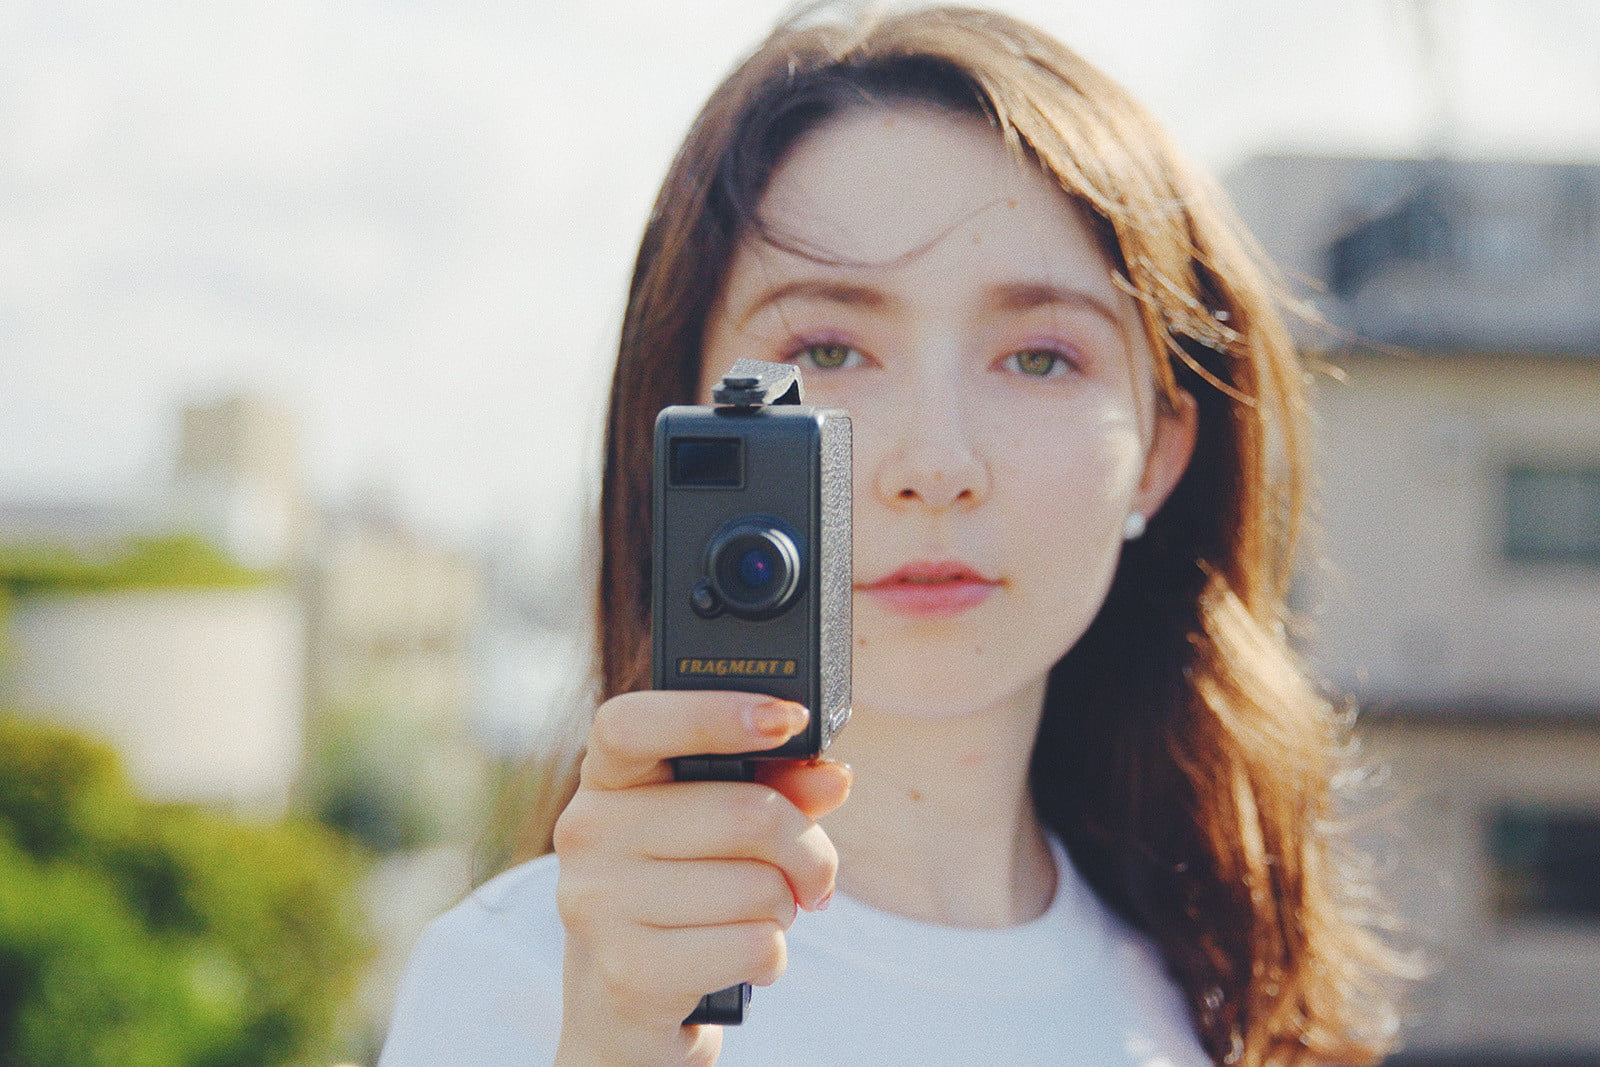 Inspired by the old-school Super 8, this $78 video camera captures GIFs